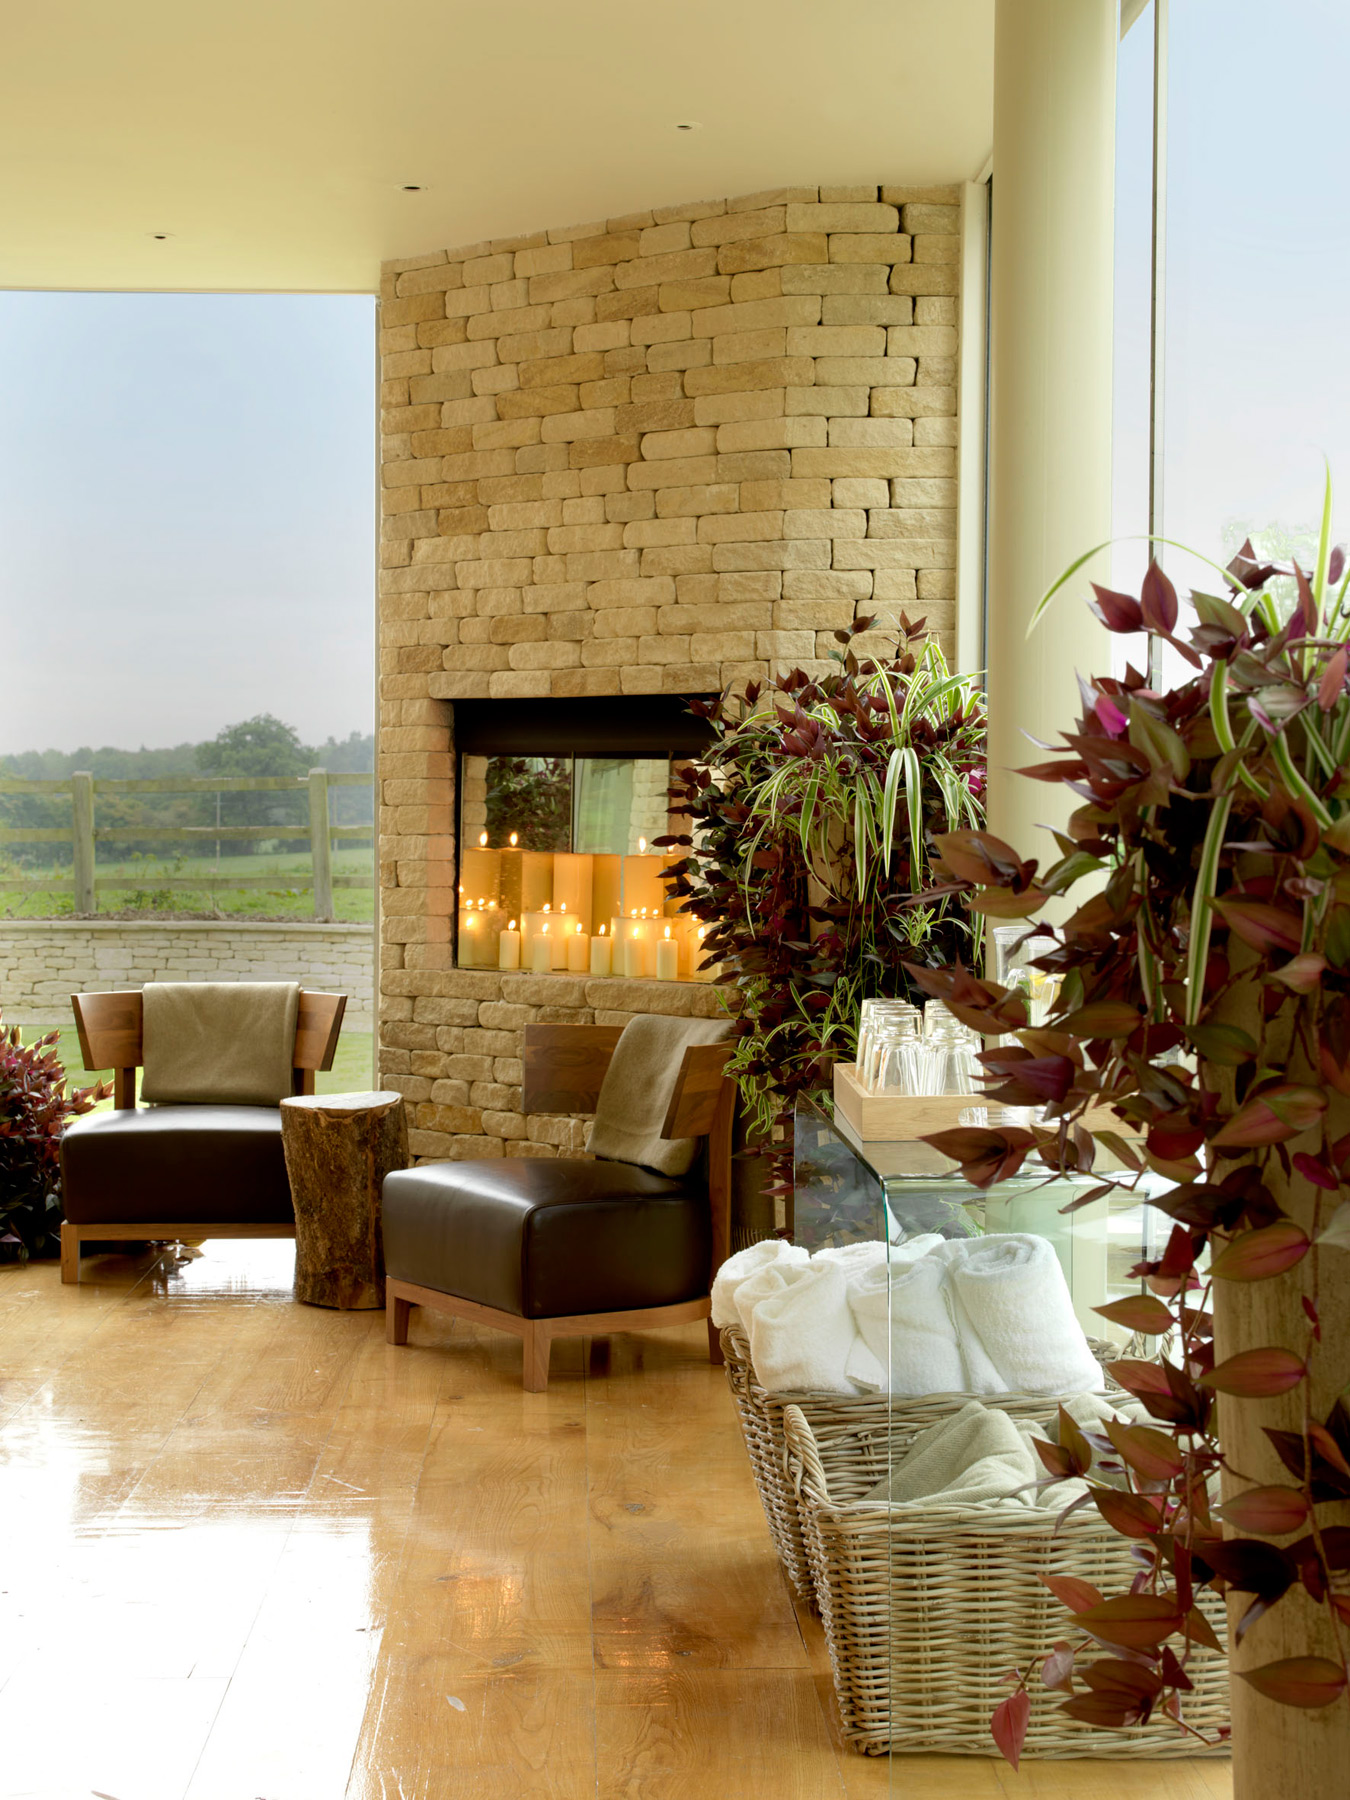 Barnsley House Hotel - A Destination Encapsulating The Beauty Of The Cotswolds 3